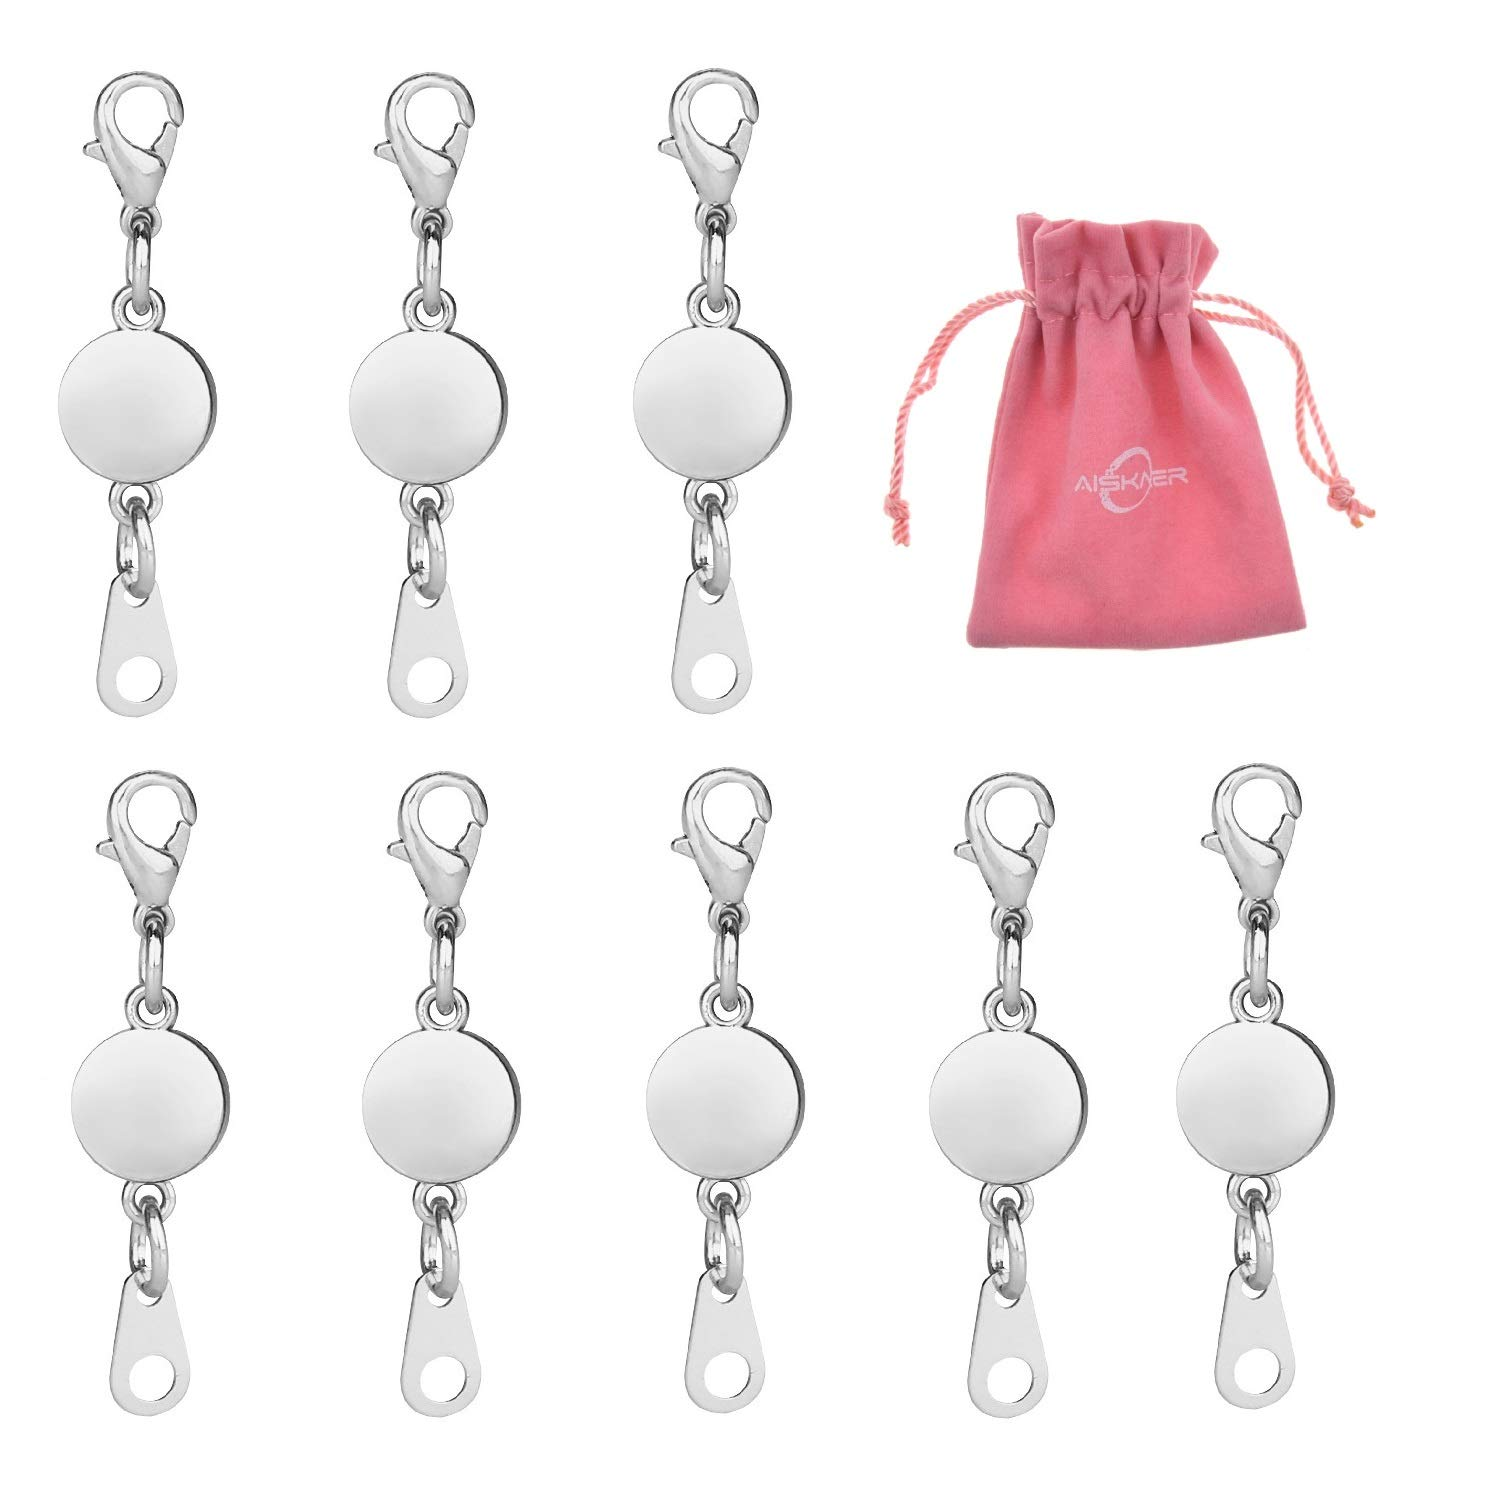 Aiskaer 8 Pcs Locking Magnetic Clasps Magnetic Clasps for Jewelry (Silver) by Aiskaer